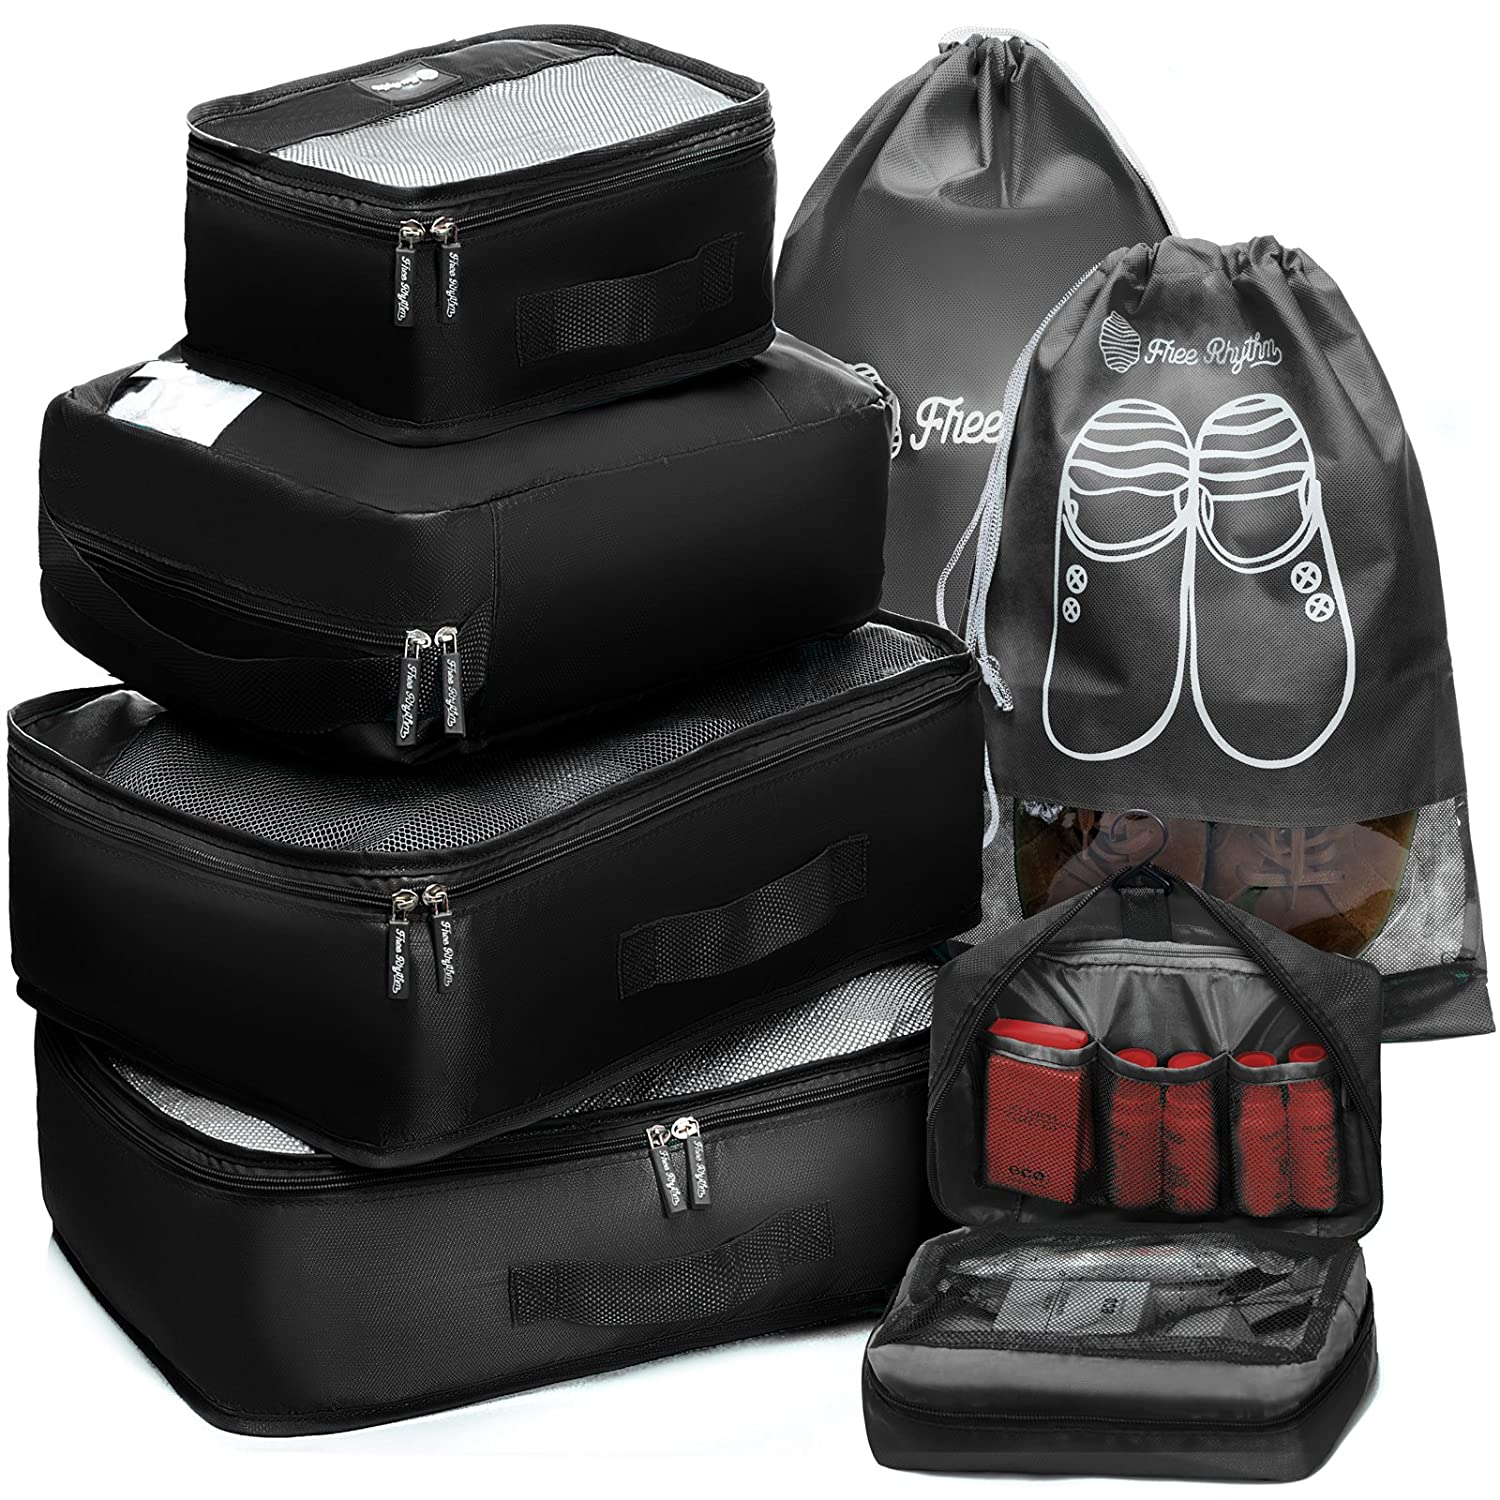 a39bc780eac5 Packing Cubes Travel Set 7Pc 2 Large Cube Organizer Laundry Shoe & Toiletry  Bag